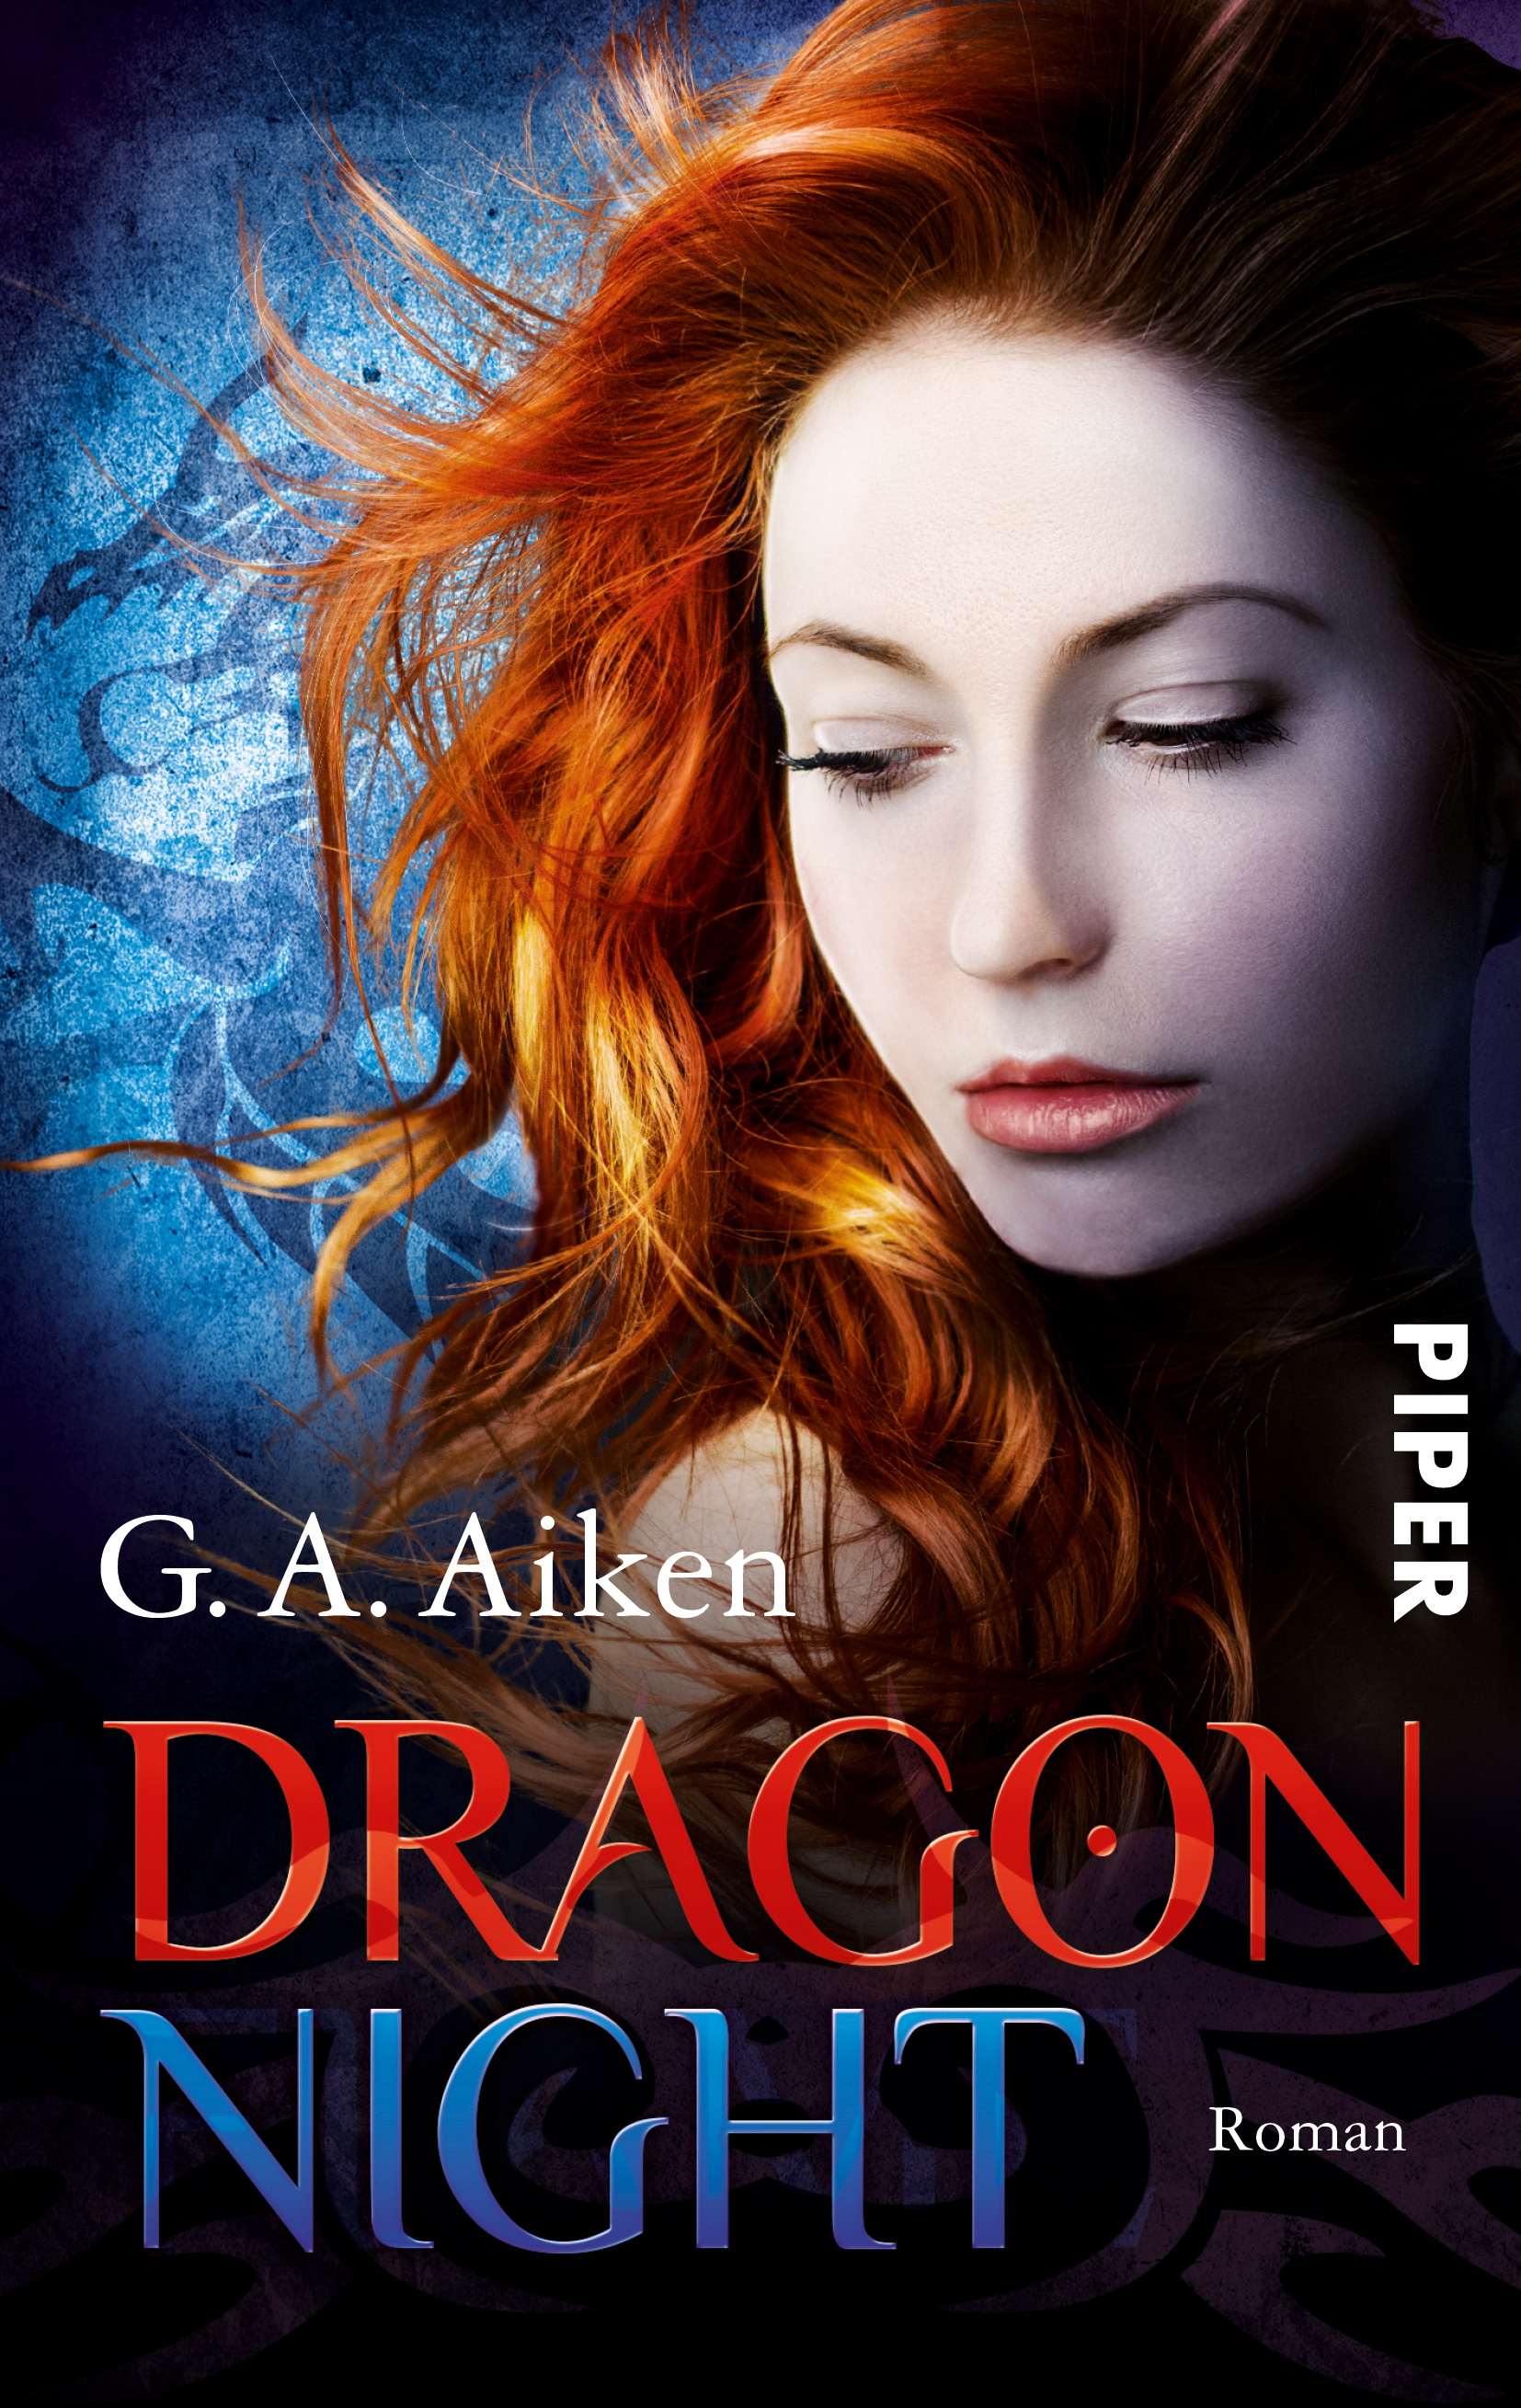 [Werbung] Dragon Night – G. A. Aiken